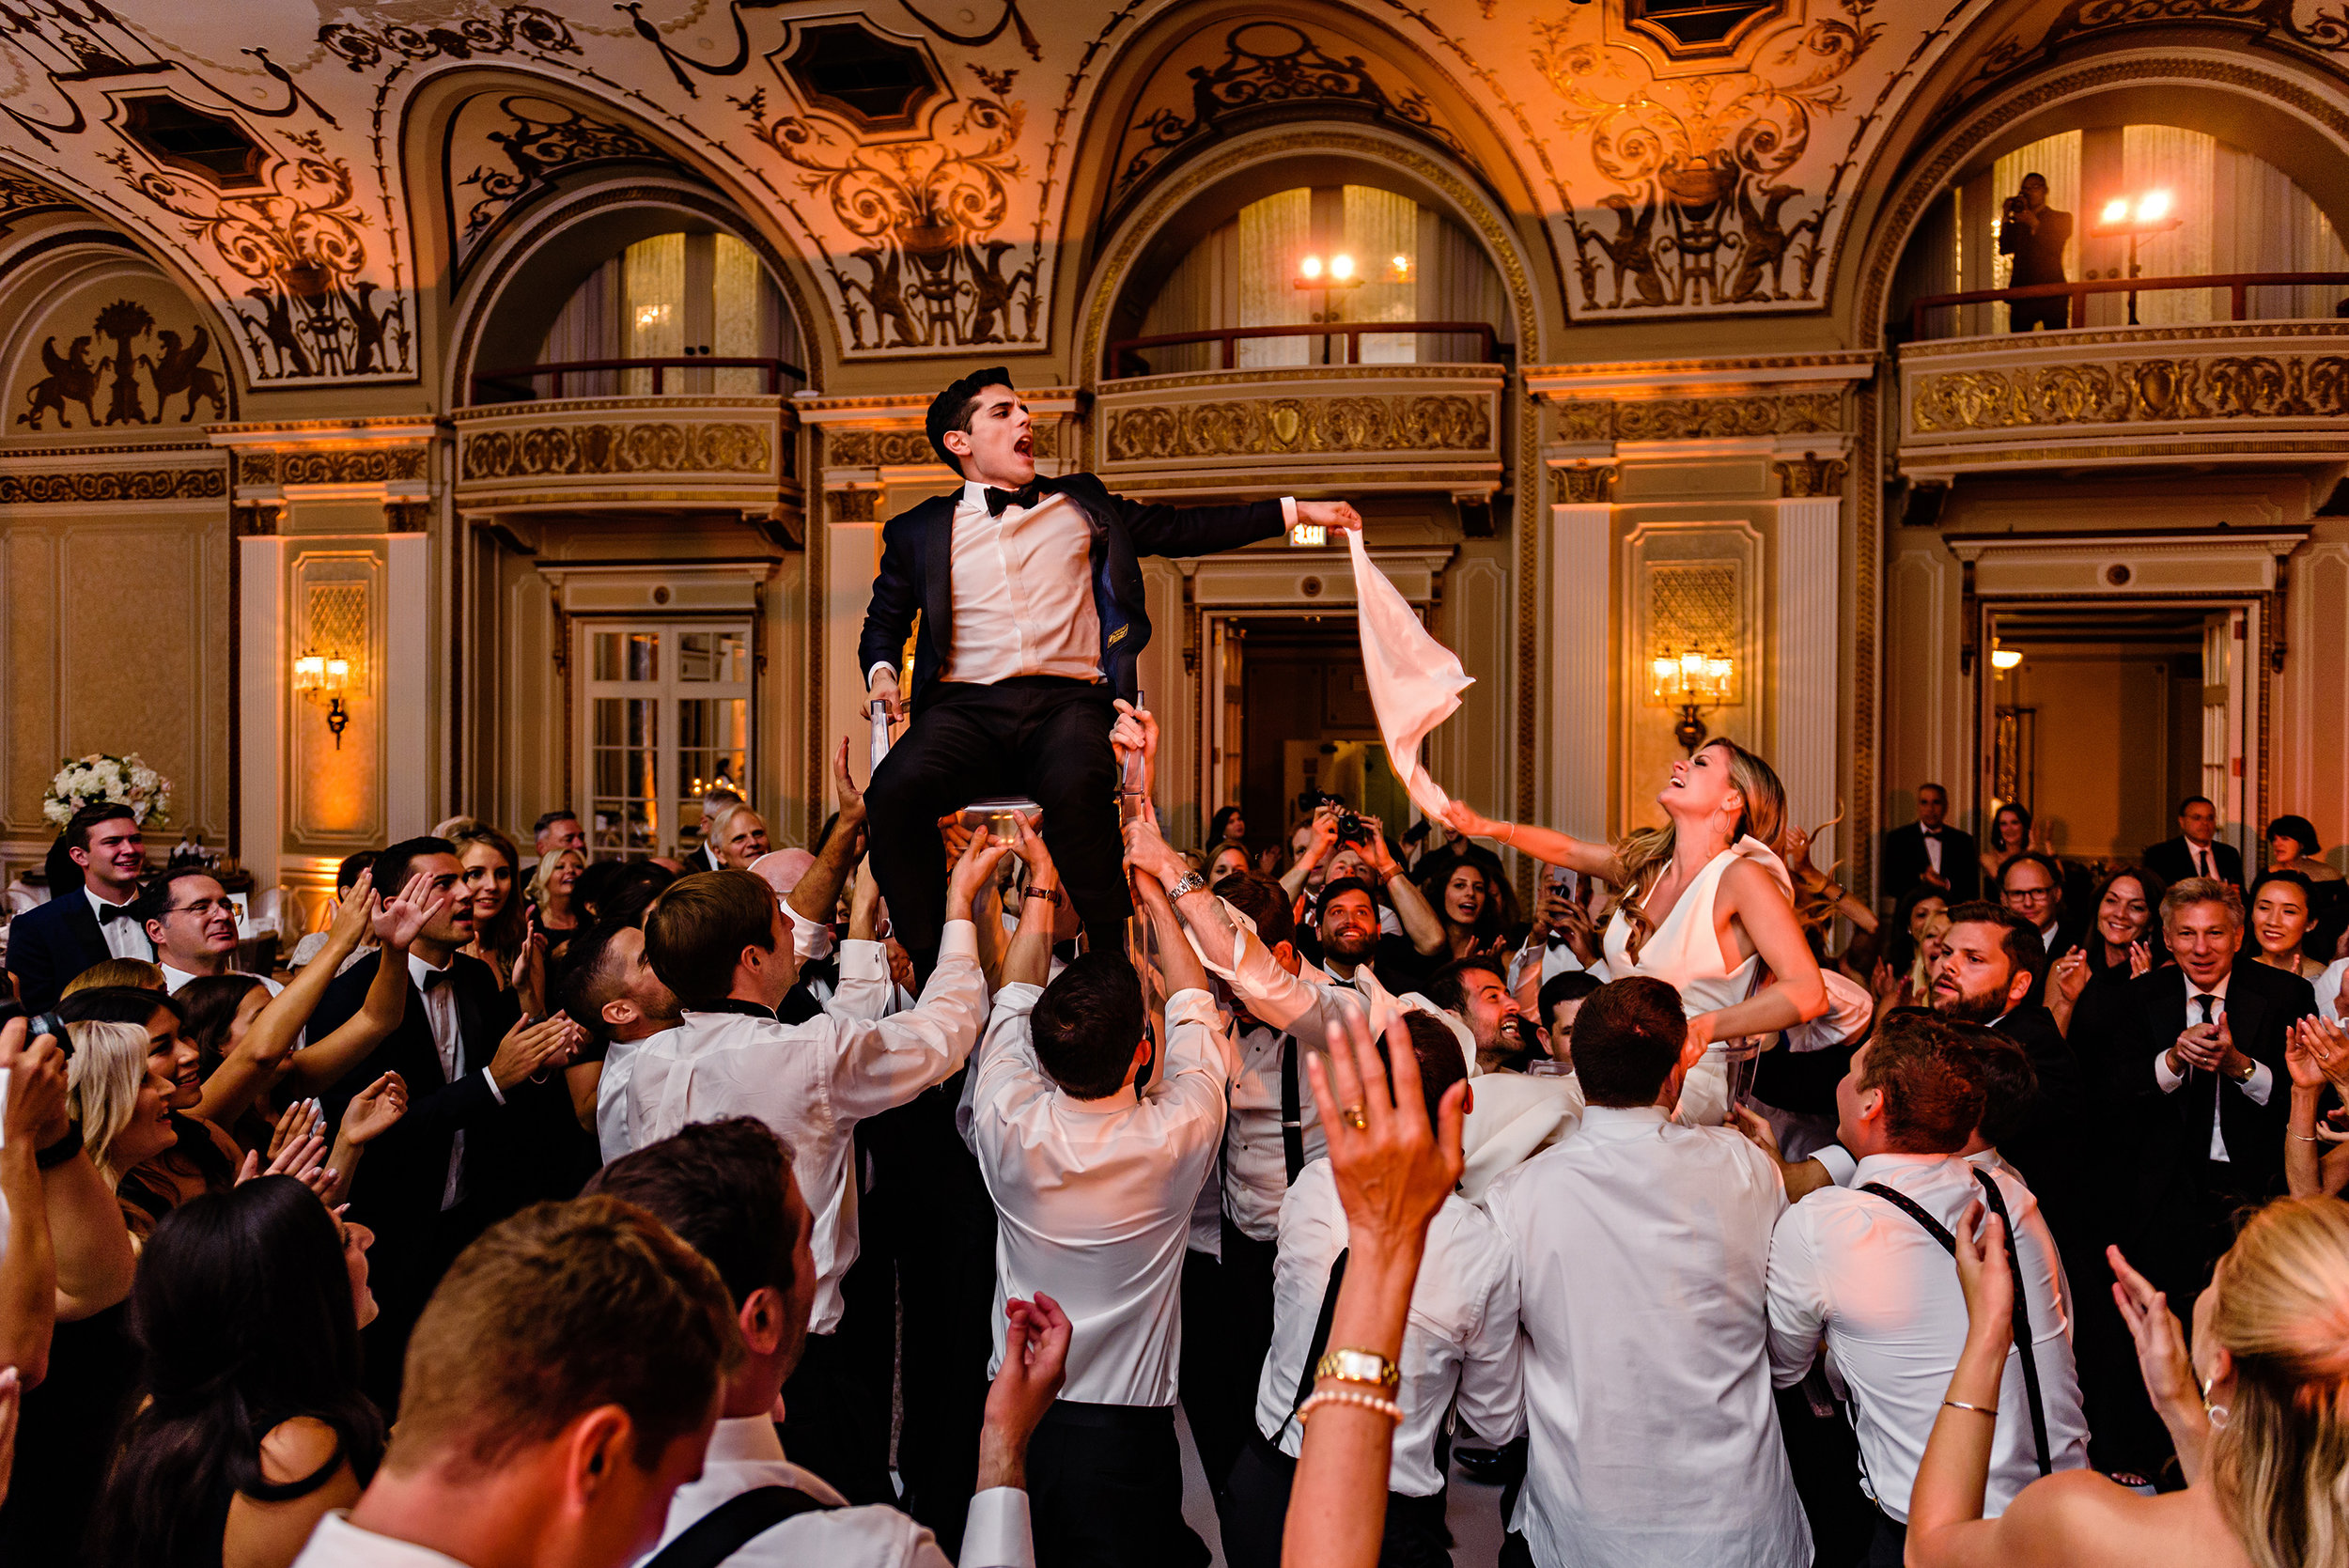 bride-and-groom-high-up-on-chairs-during-a-horah-dance-during-a-wedding-reception-at-a-fairmont-chateau-laurier-in-ottawa.jpg